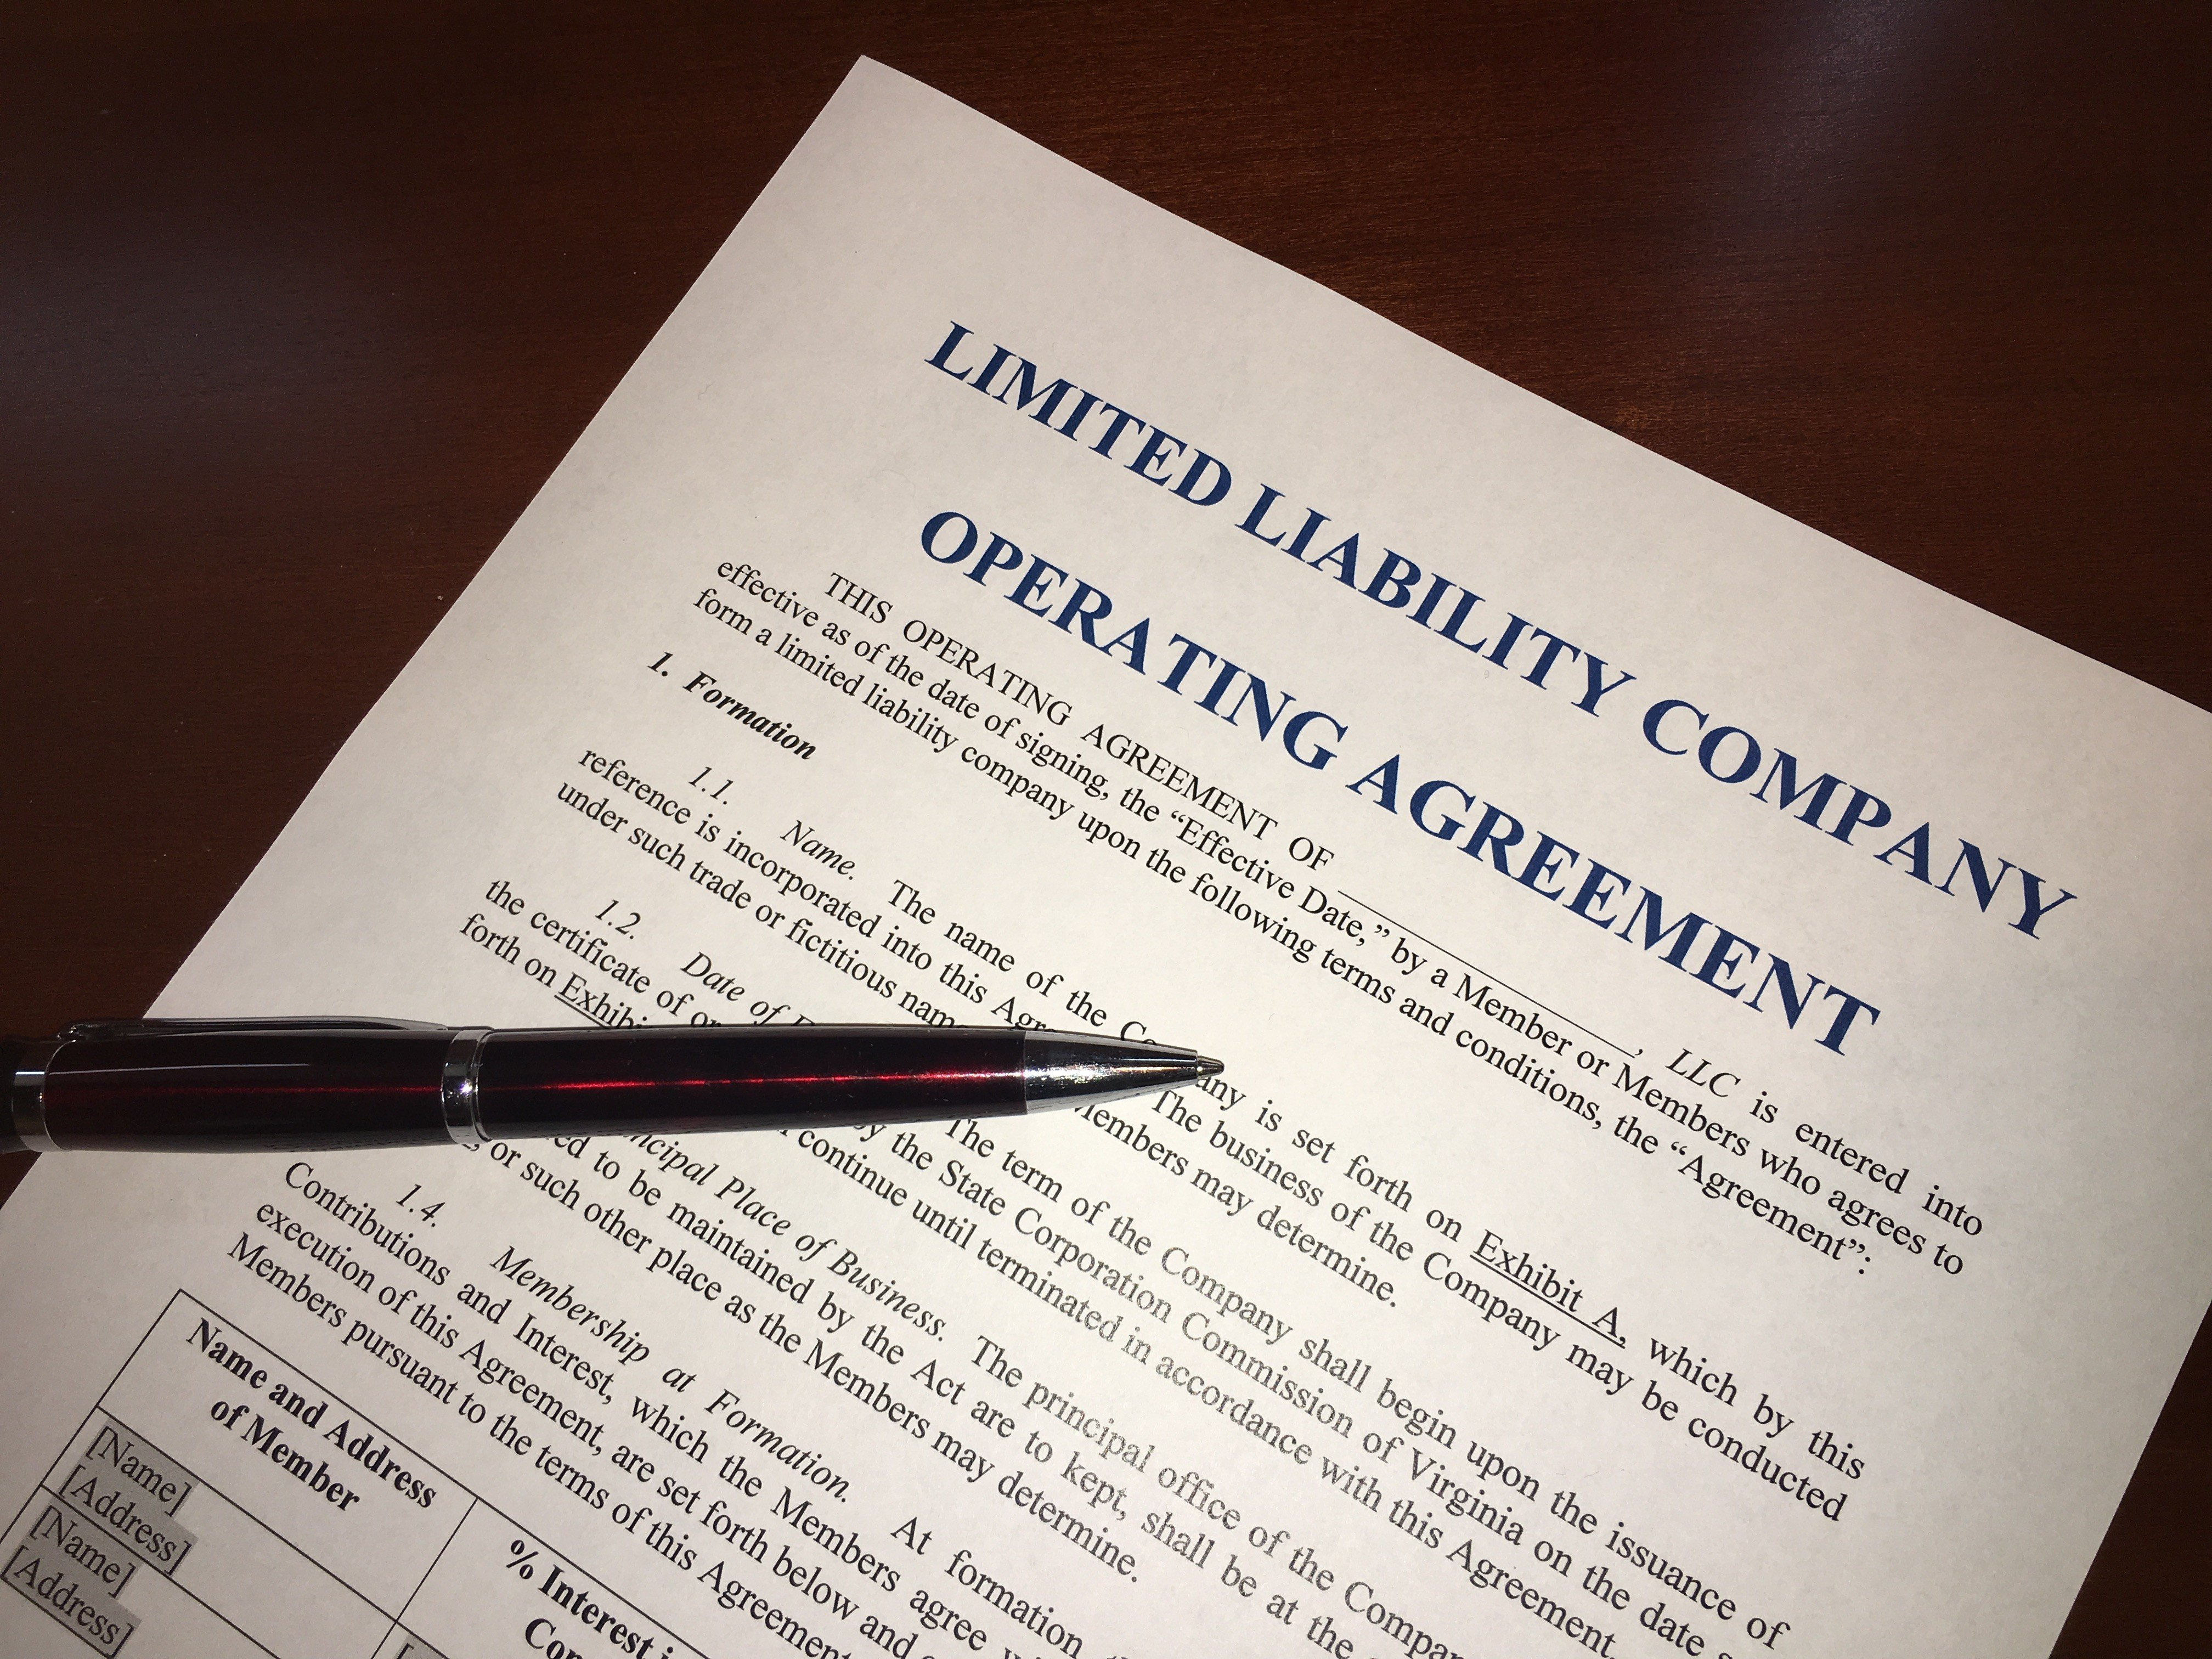 An Llc Operating Agreement Essential To Success Dunlap Law